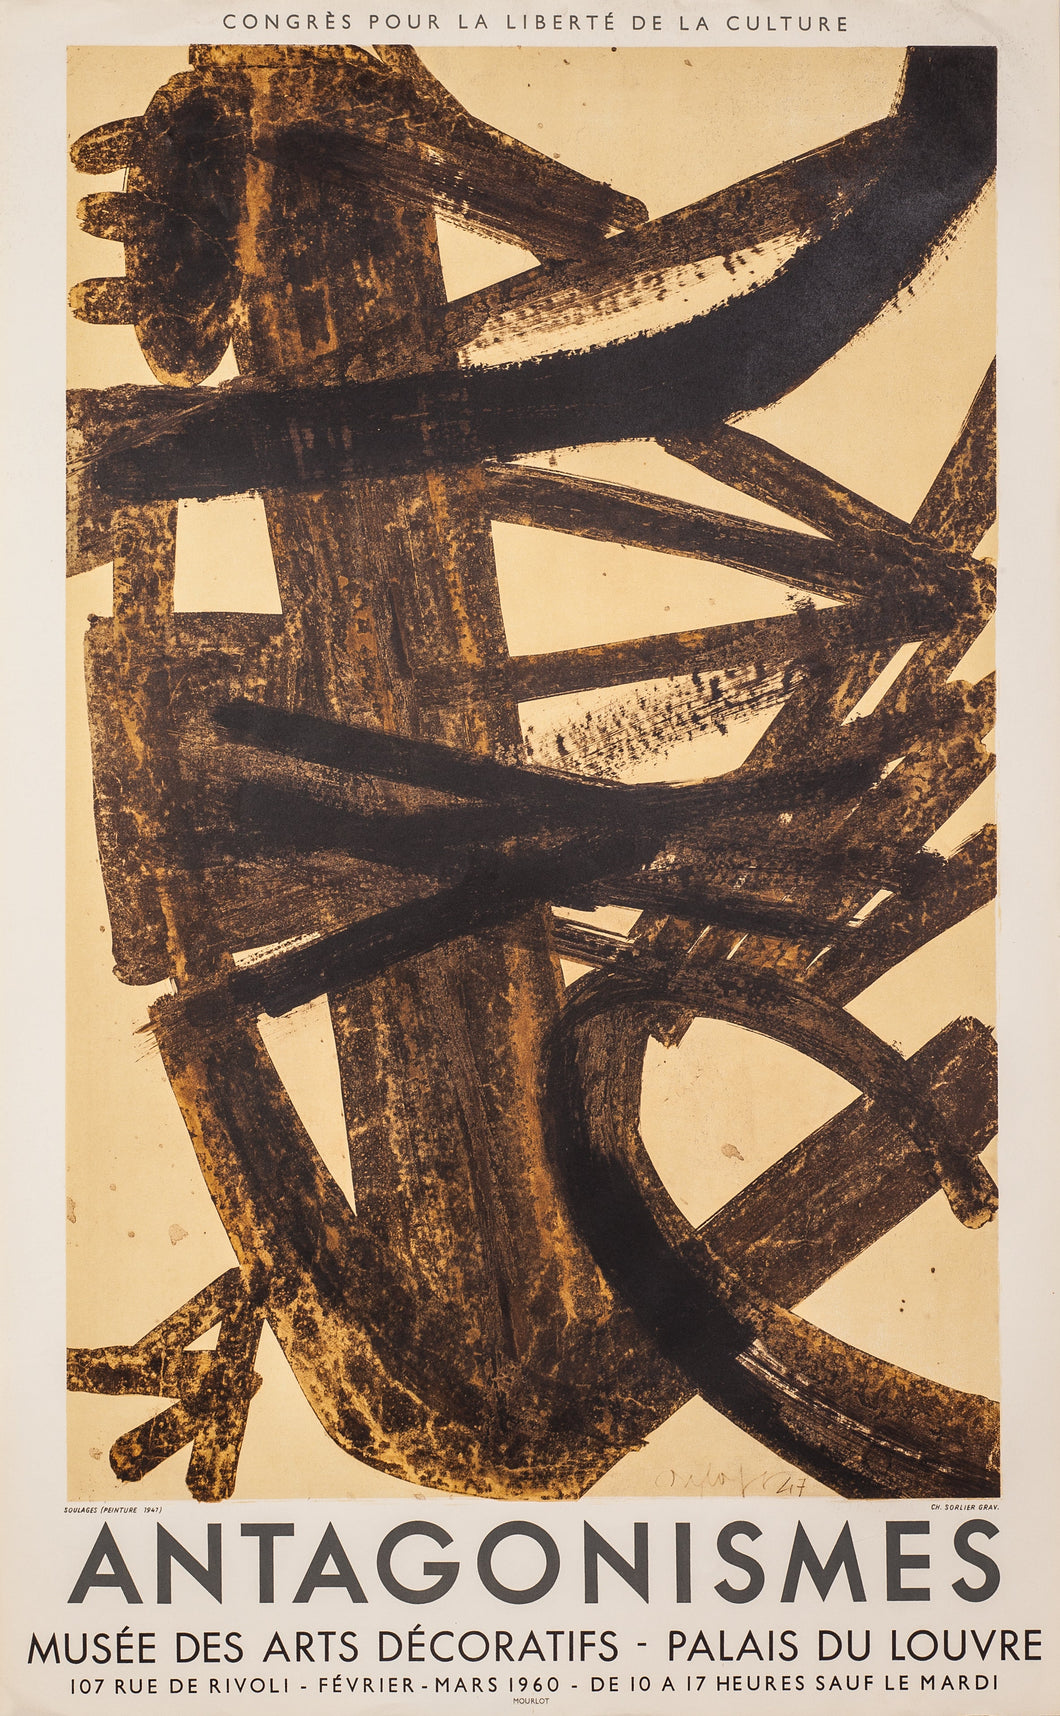 Antagonismes by Pierre Soulages, 1960